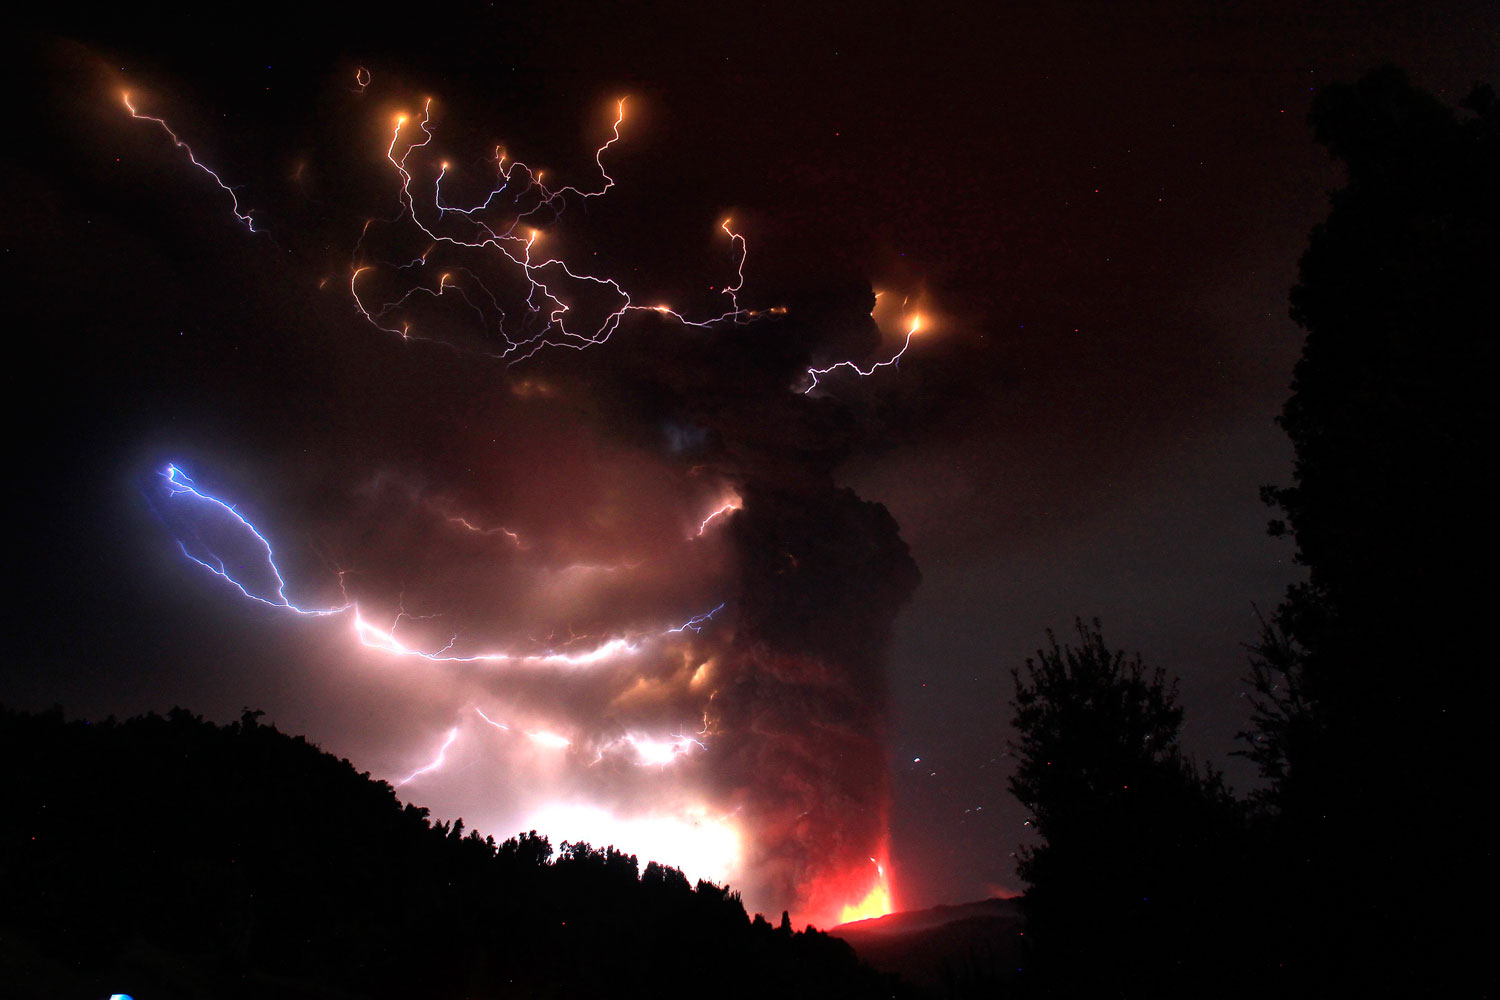 Lightning bolts strike around the Puyehue-Cordon Caulle volcanic chain near the southern city of Osorno on June 5, 2011.